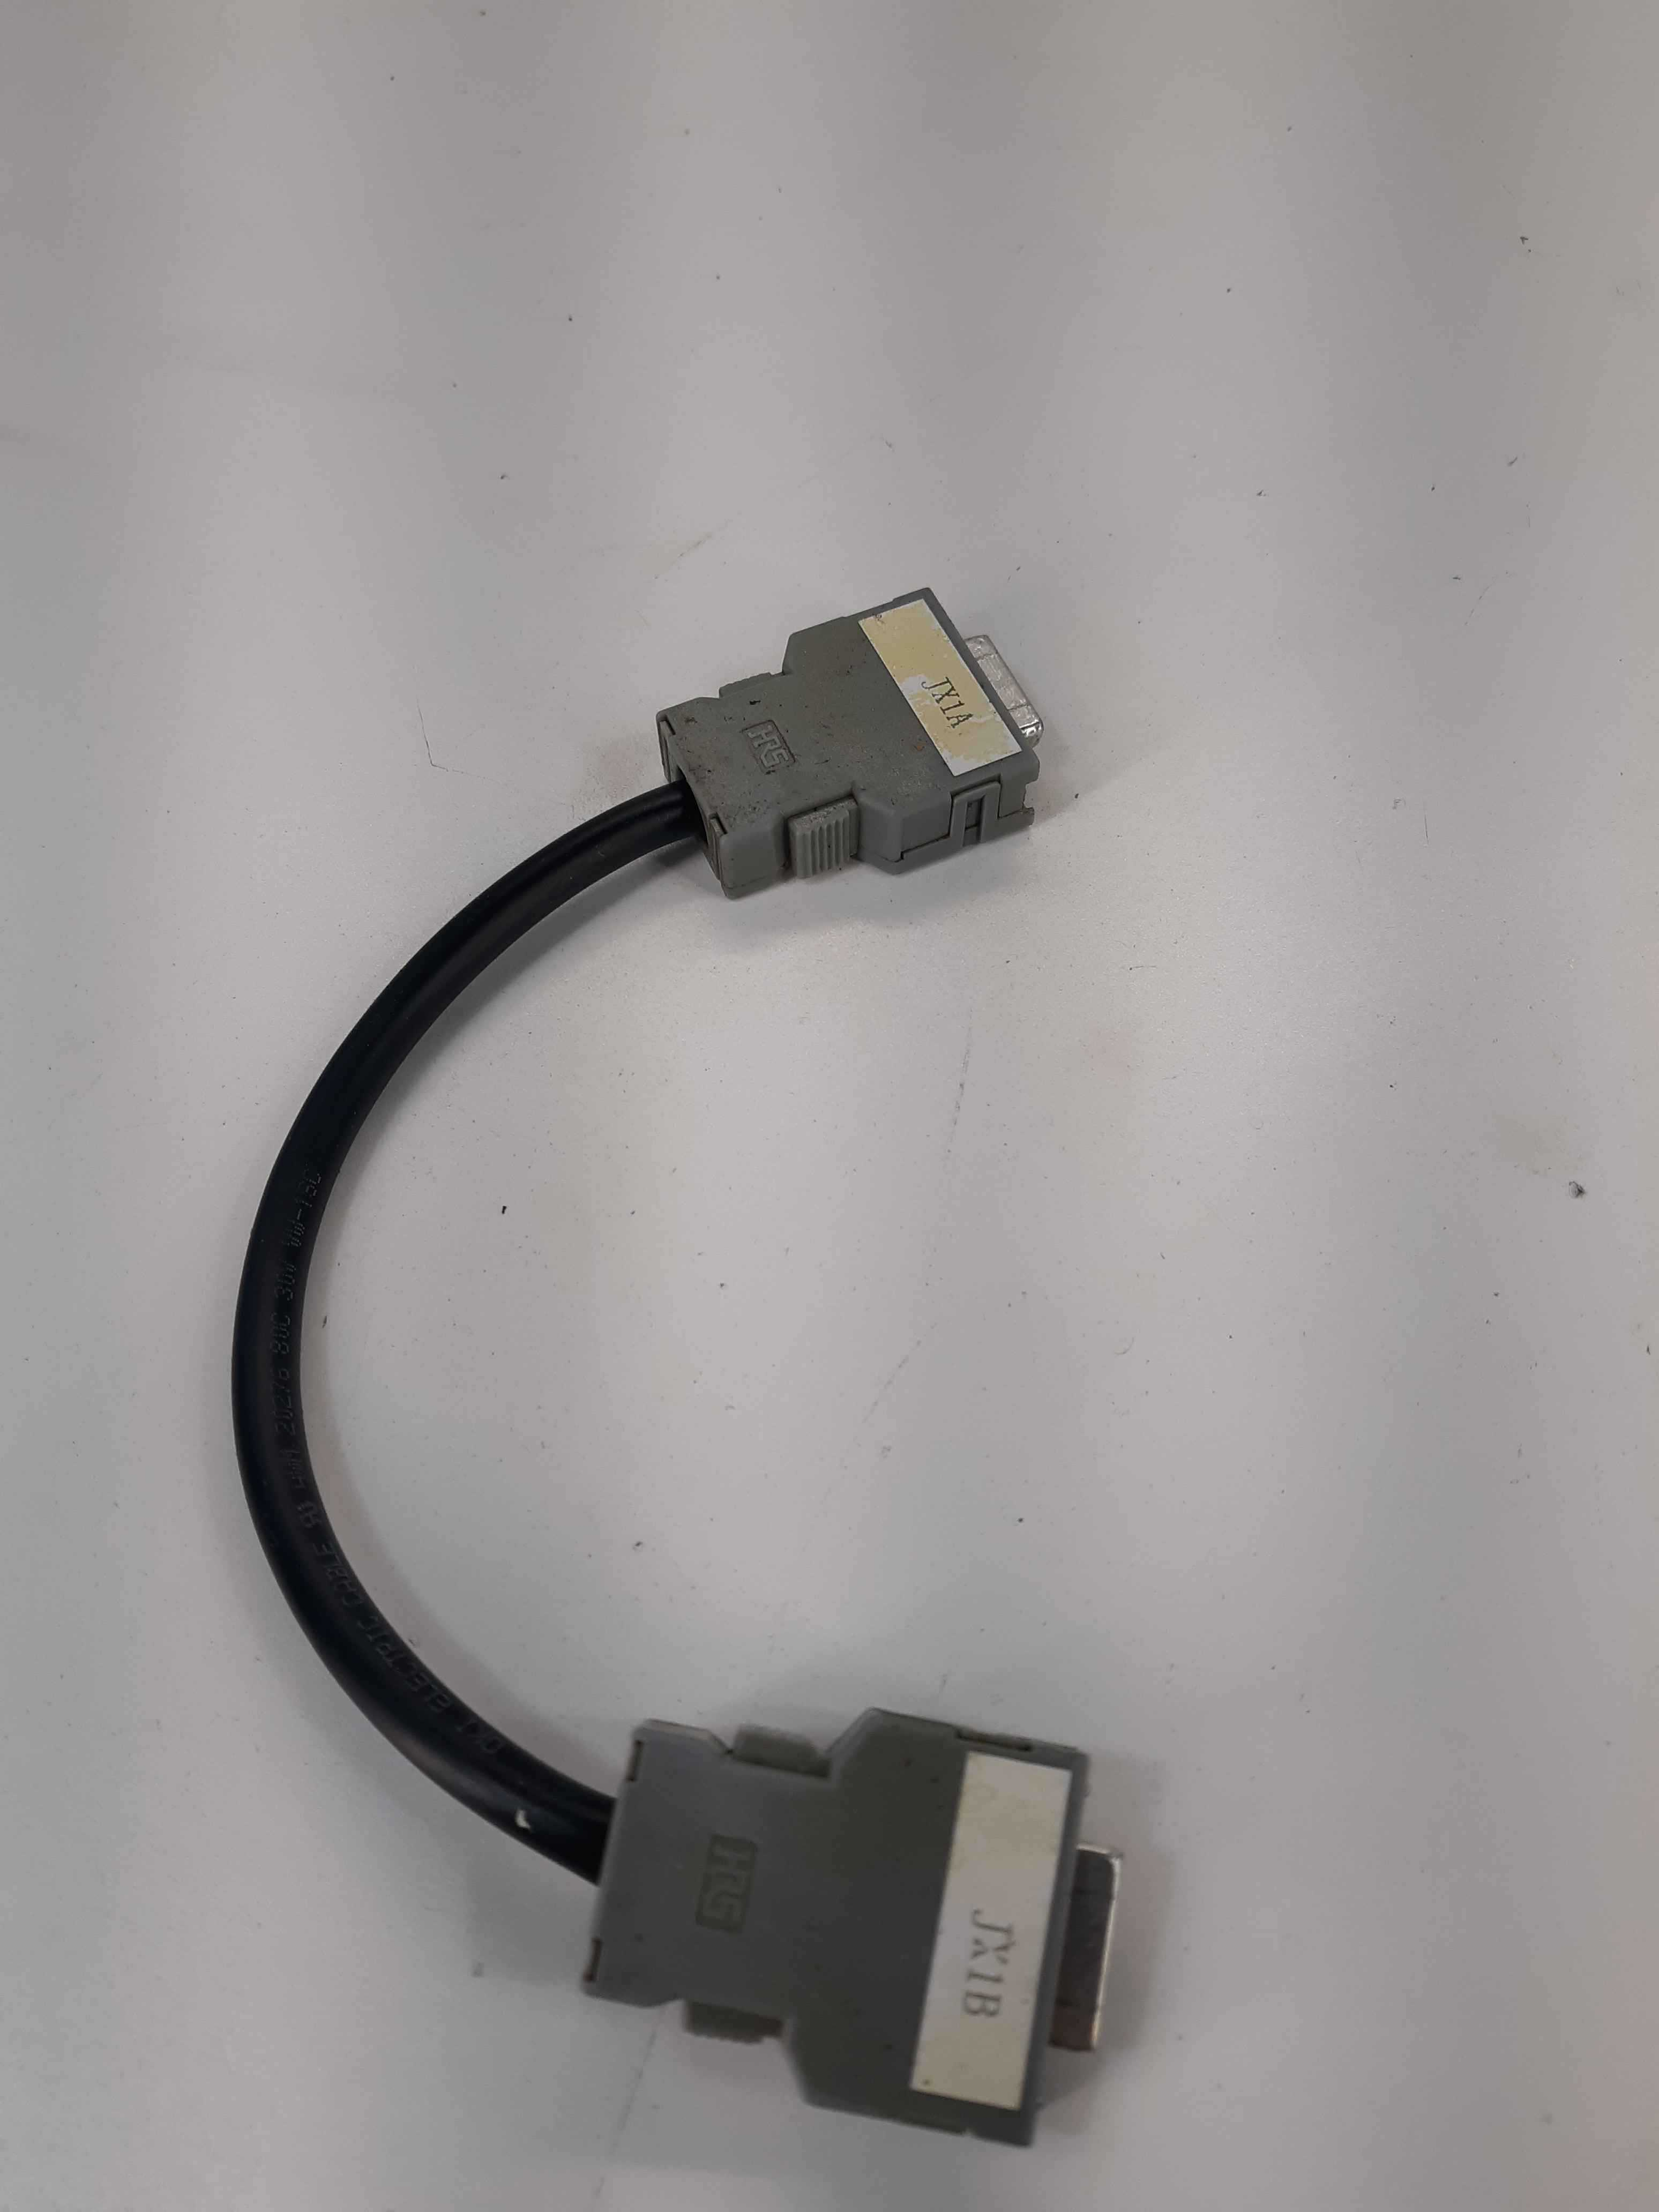 Fanuc Connector Cable, A660-2042-T074, JX1A / JX1B